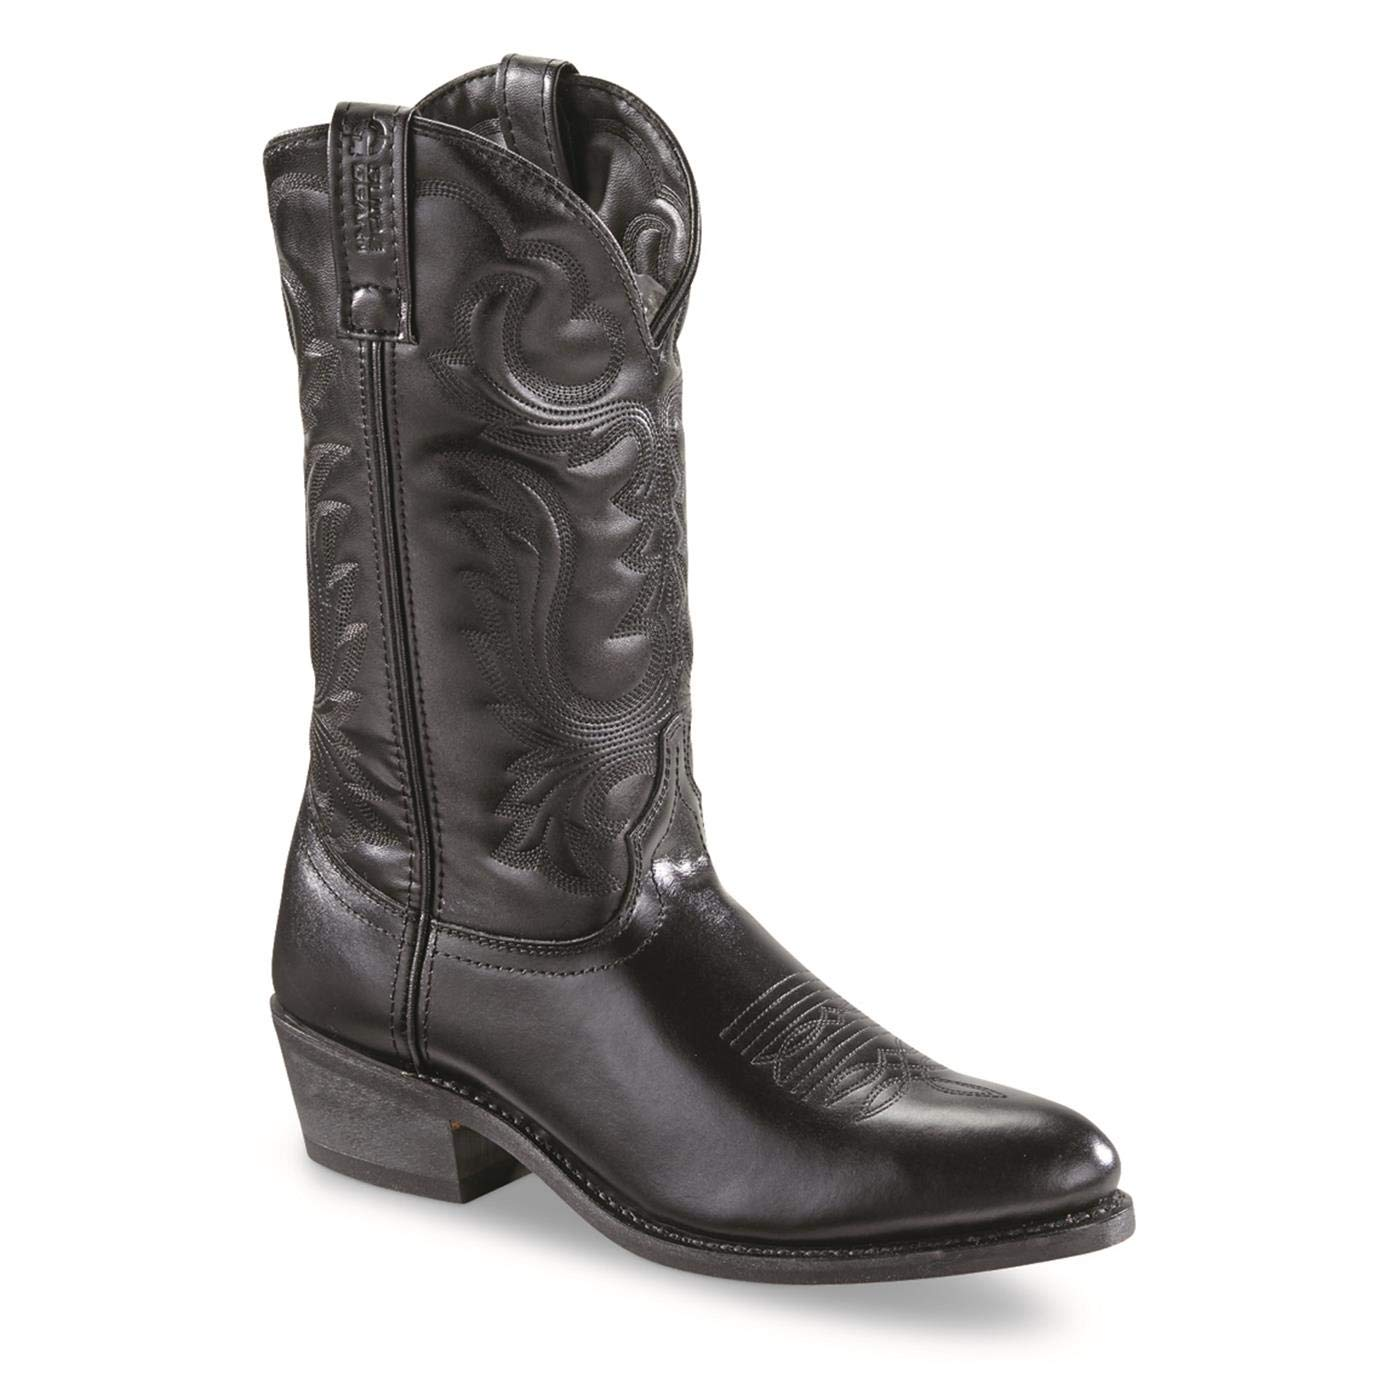 966b23149a9 Best Rated in Men's Western Boots & Helpful Customer Reviews ...